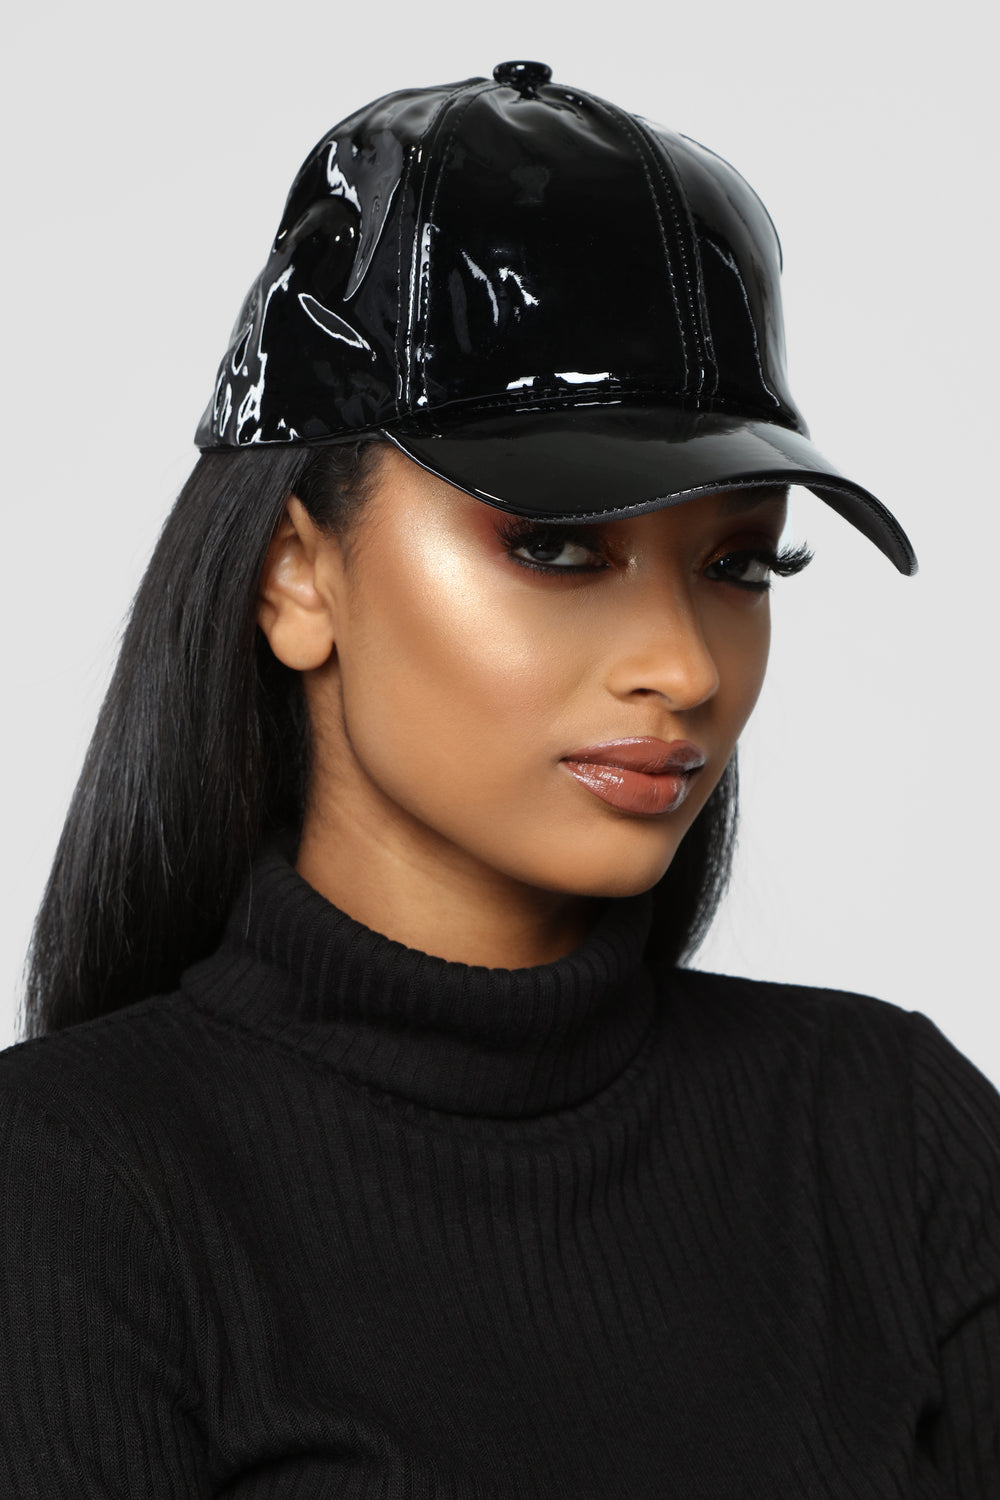 To The Ball Game Baseball Cap - Black